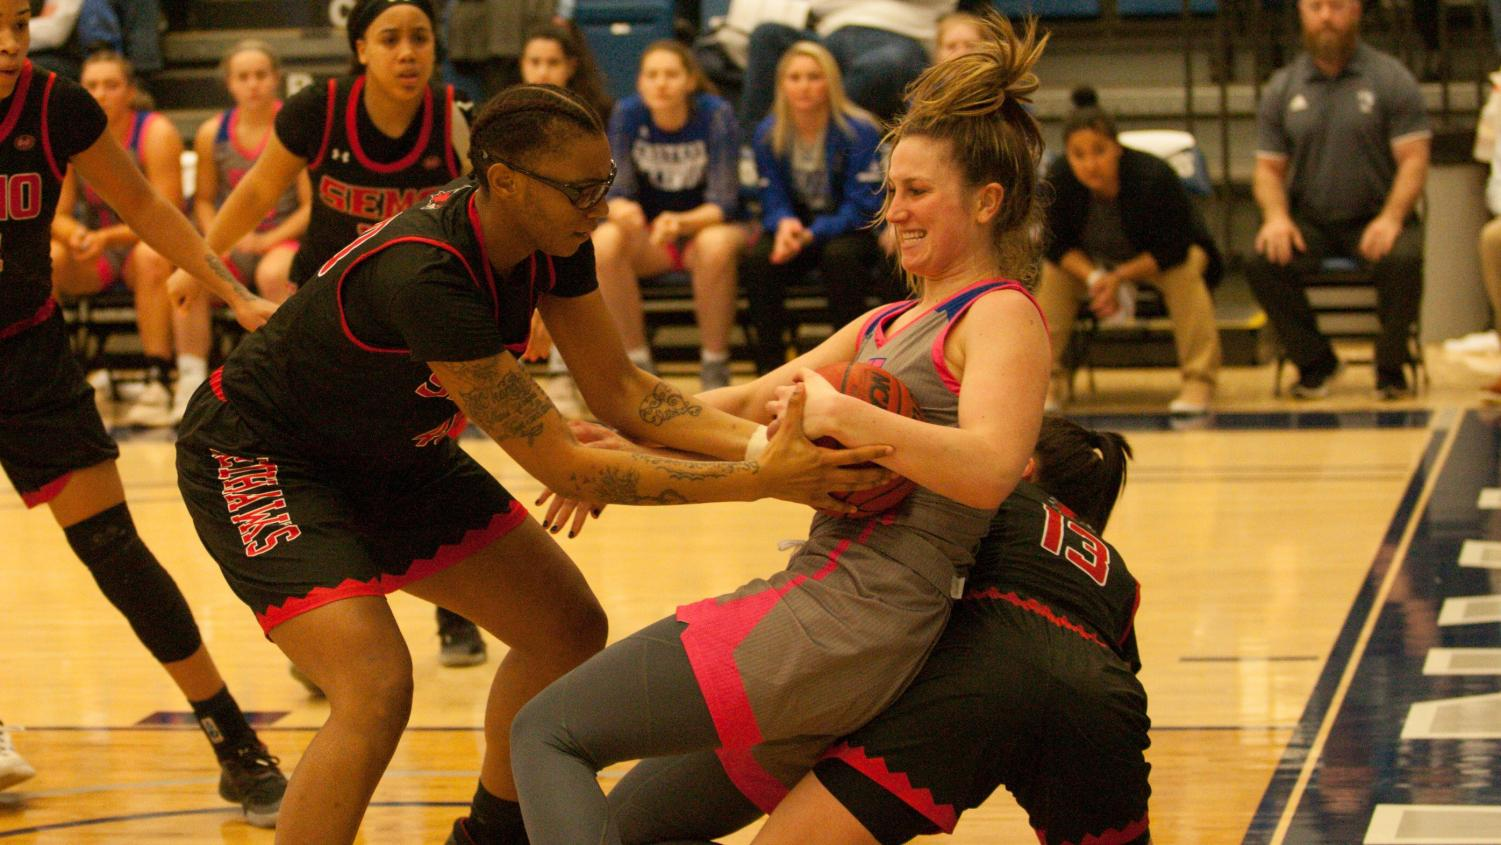 Eastern forward Abby Wahl fights for a ball in the Panthers 77-65 loss to Southeast Missouri Saturday in Lantz Arena.